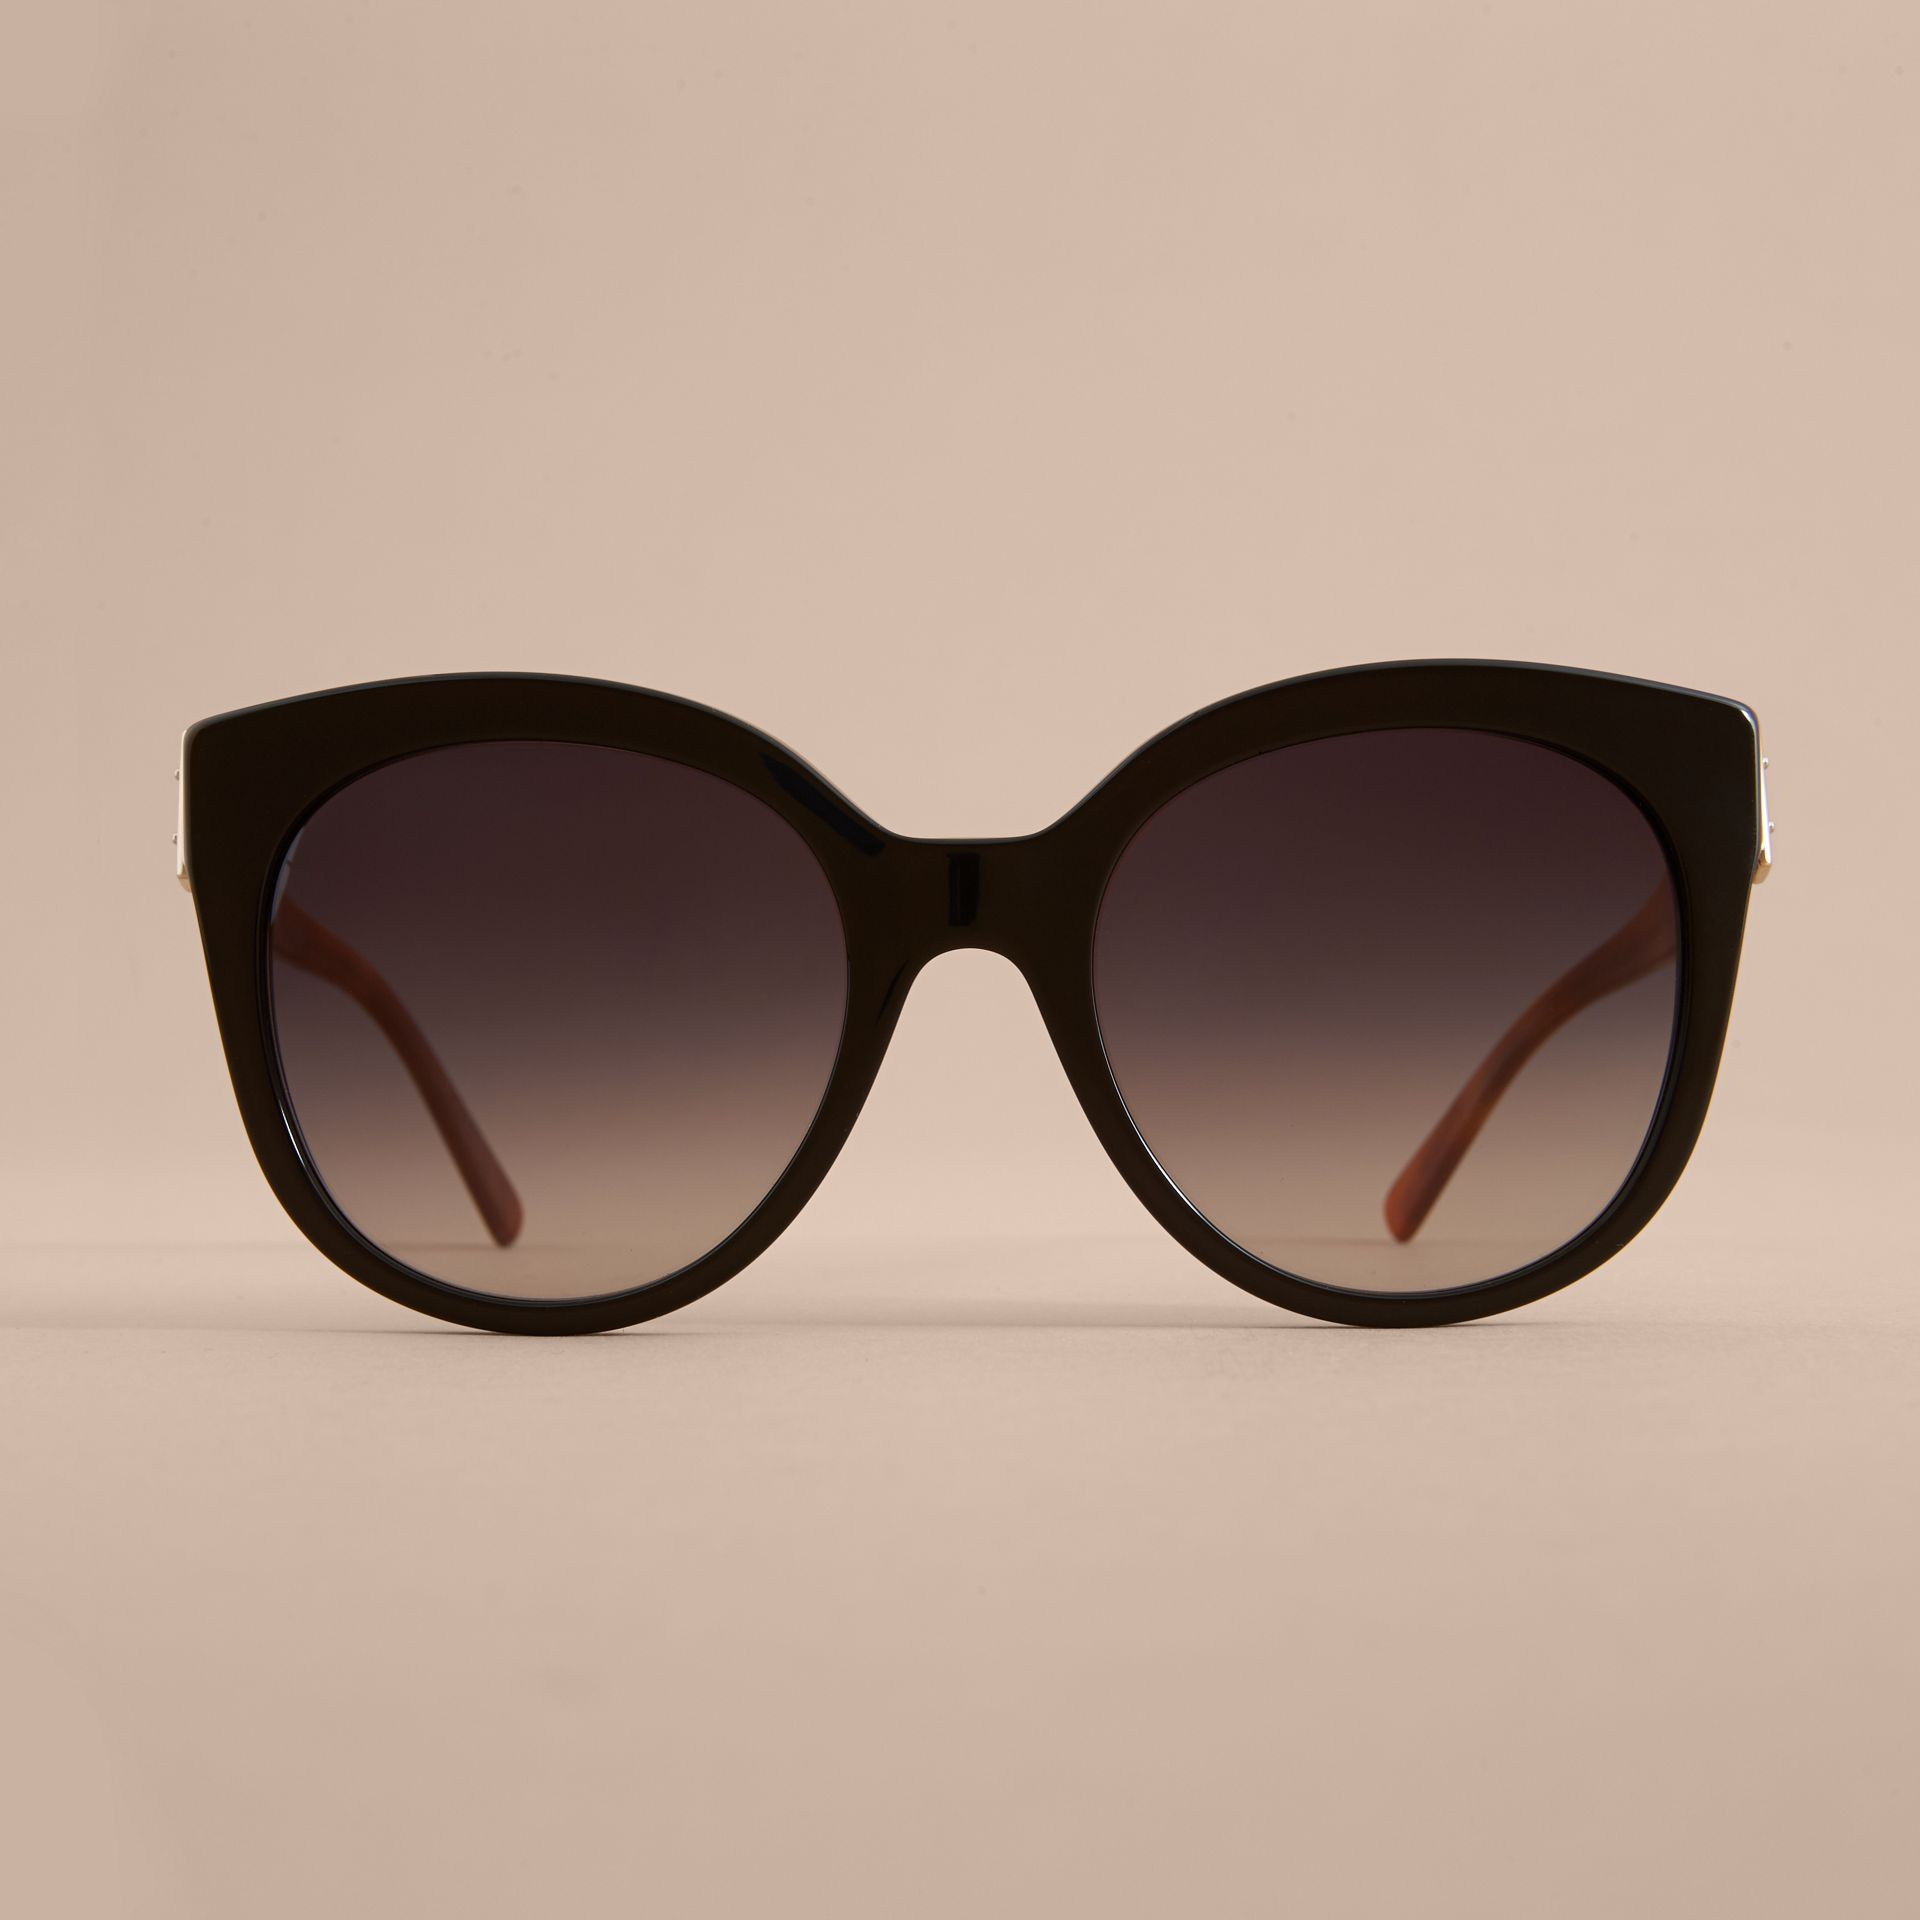 Buckle Detail Cat-eye Frame Sunglasses in Black - Women | Burberry - gallery image 2